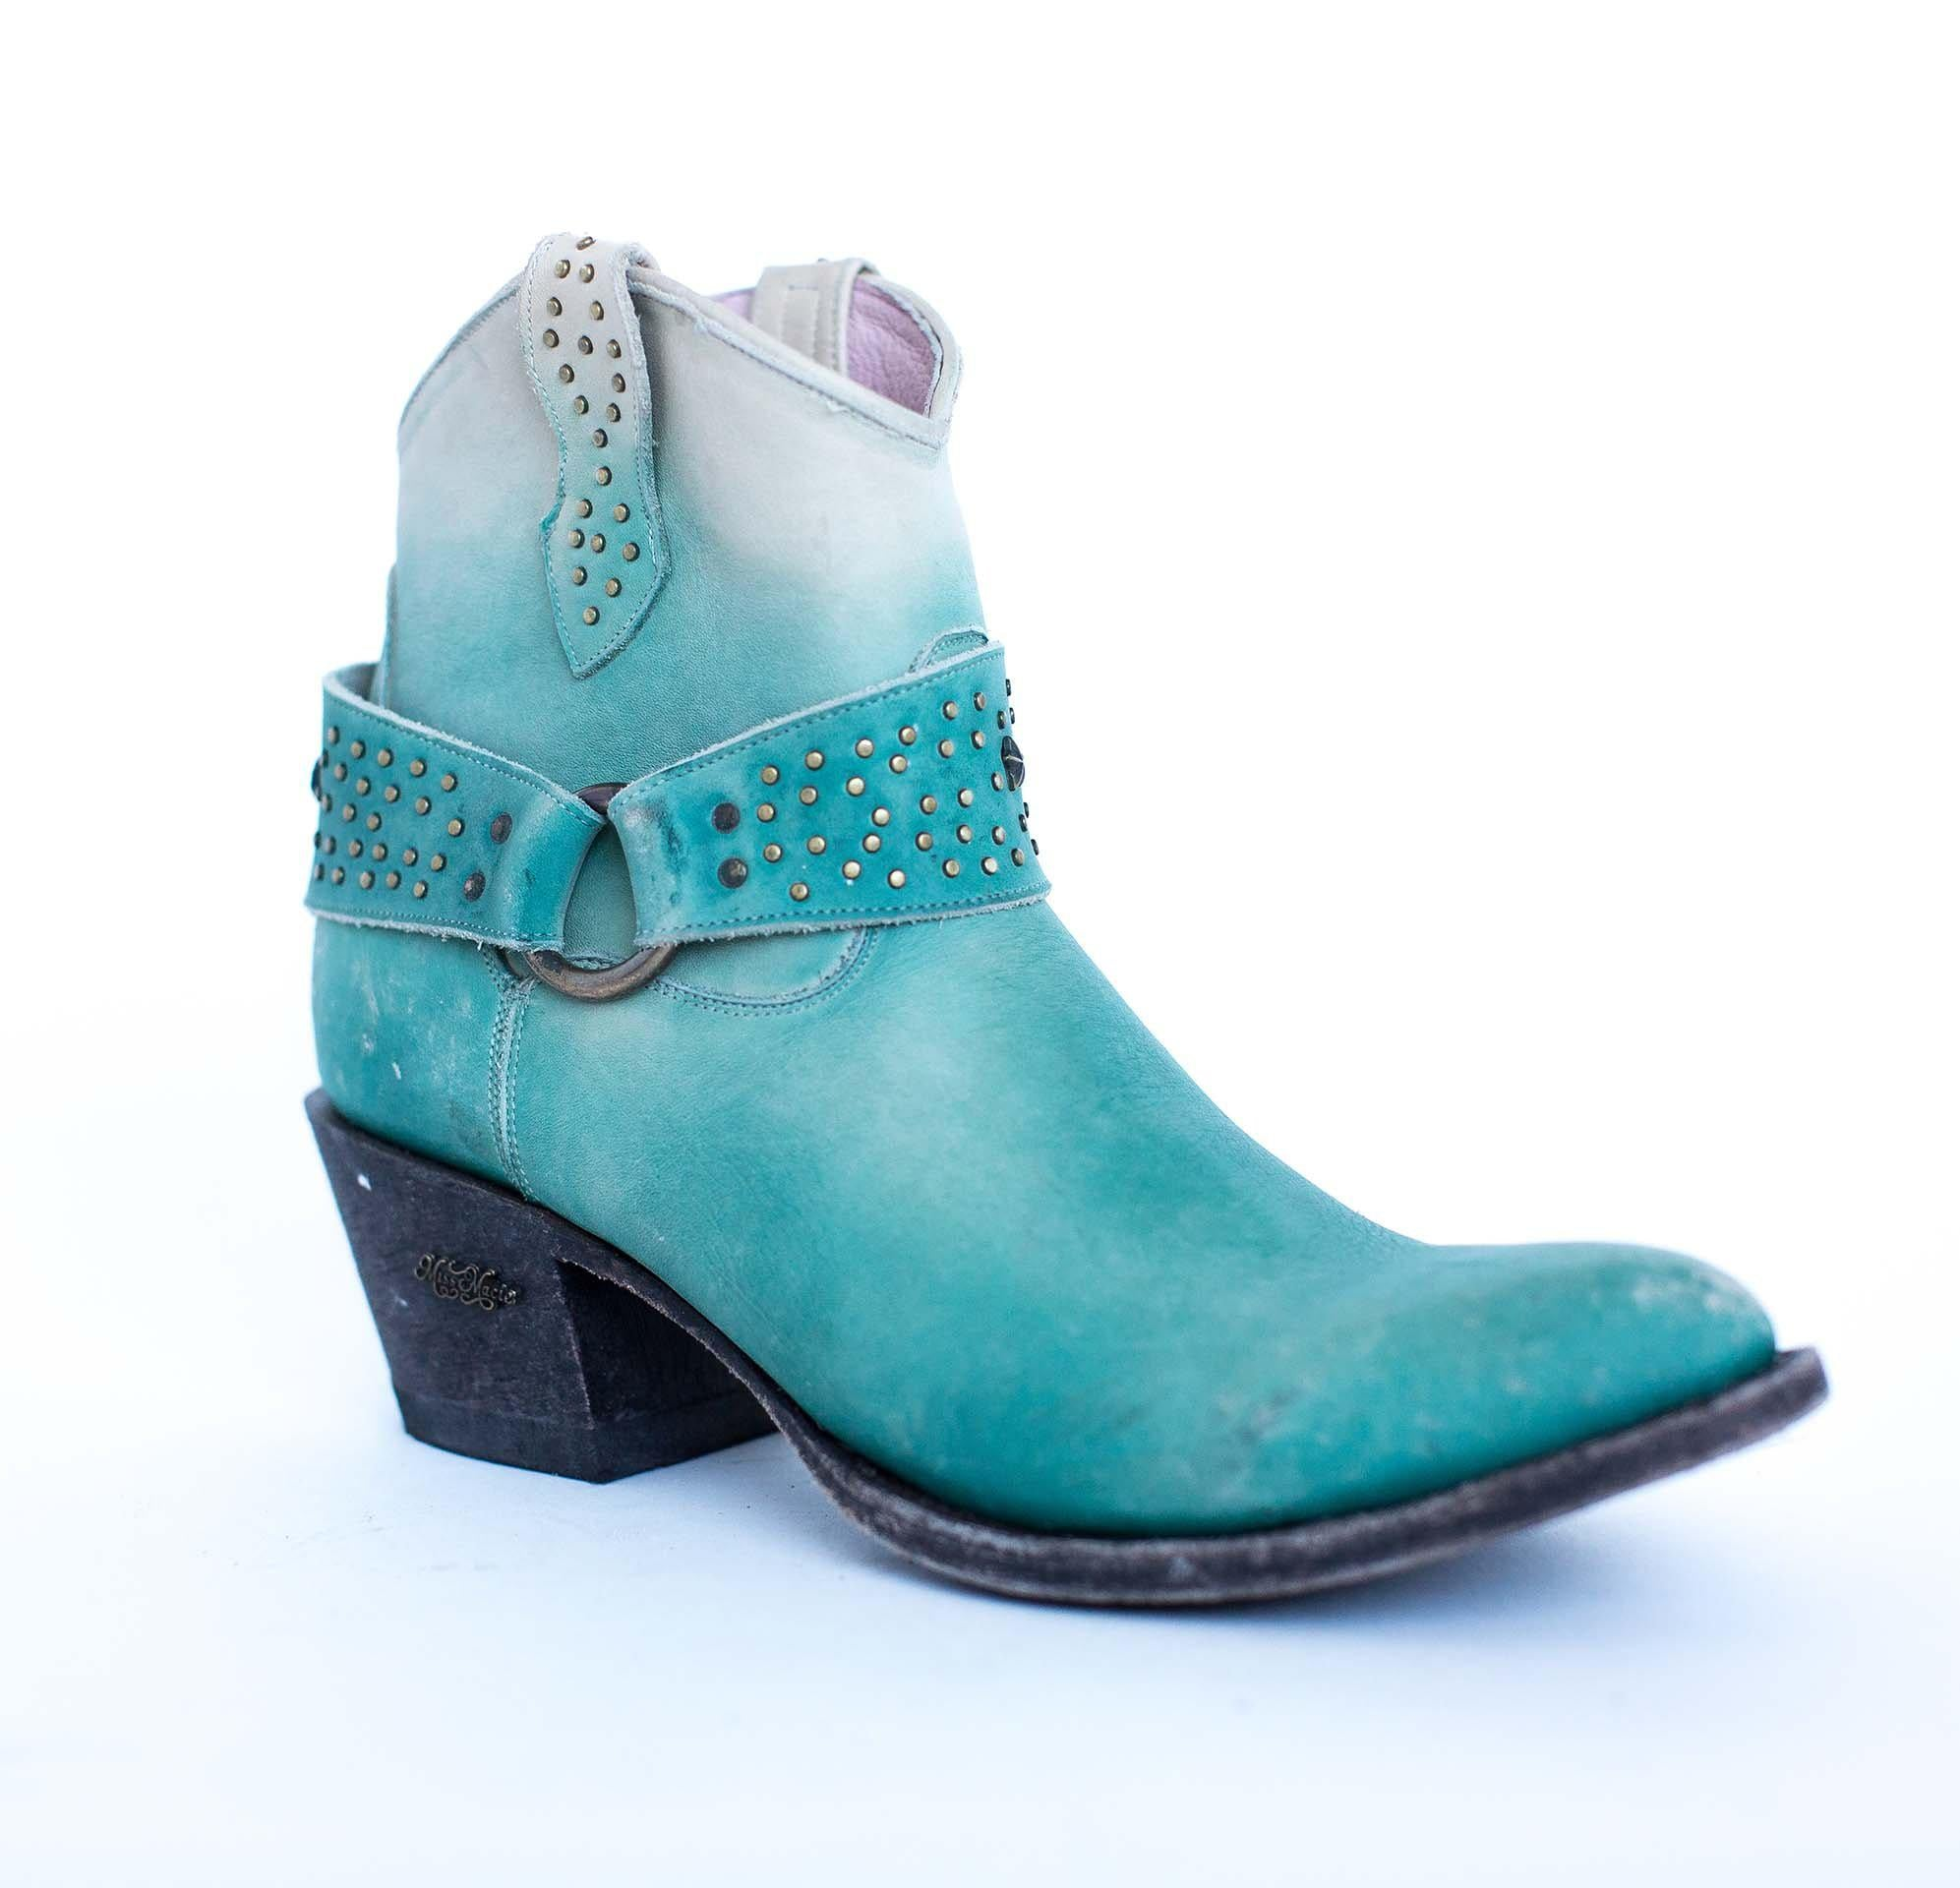 Miss Macie Boots Inspired Collection - Fine N Dandy in Turquoise